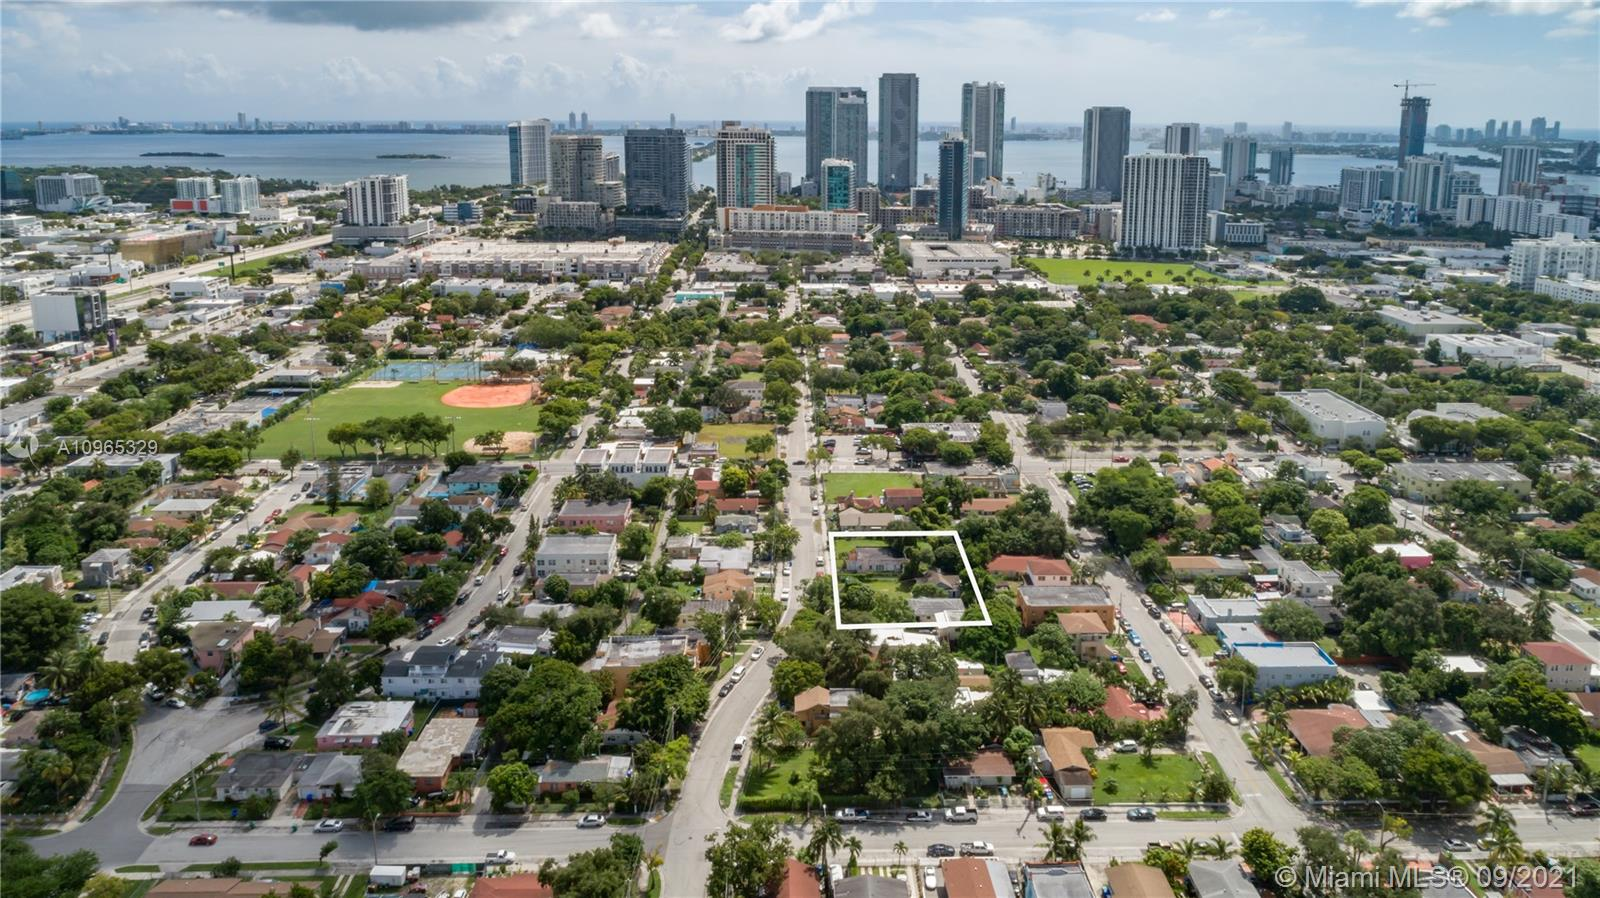 Details for 250 33rd St, Miami, FL 33127